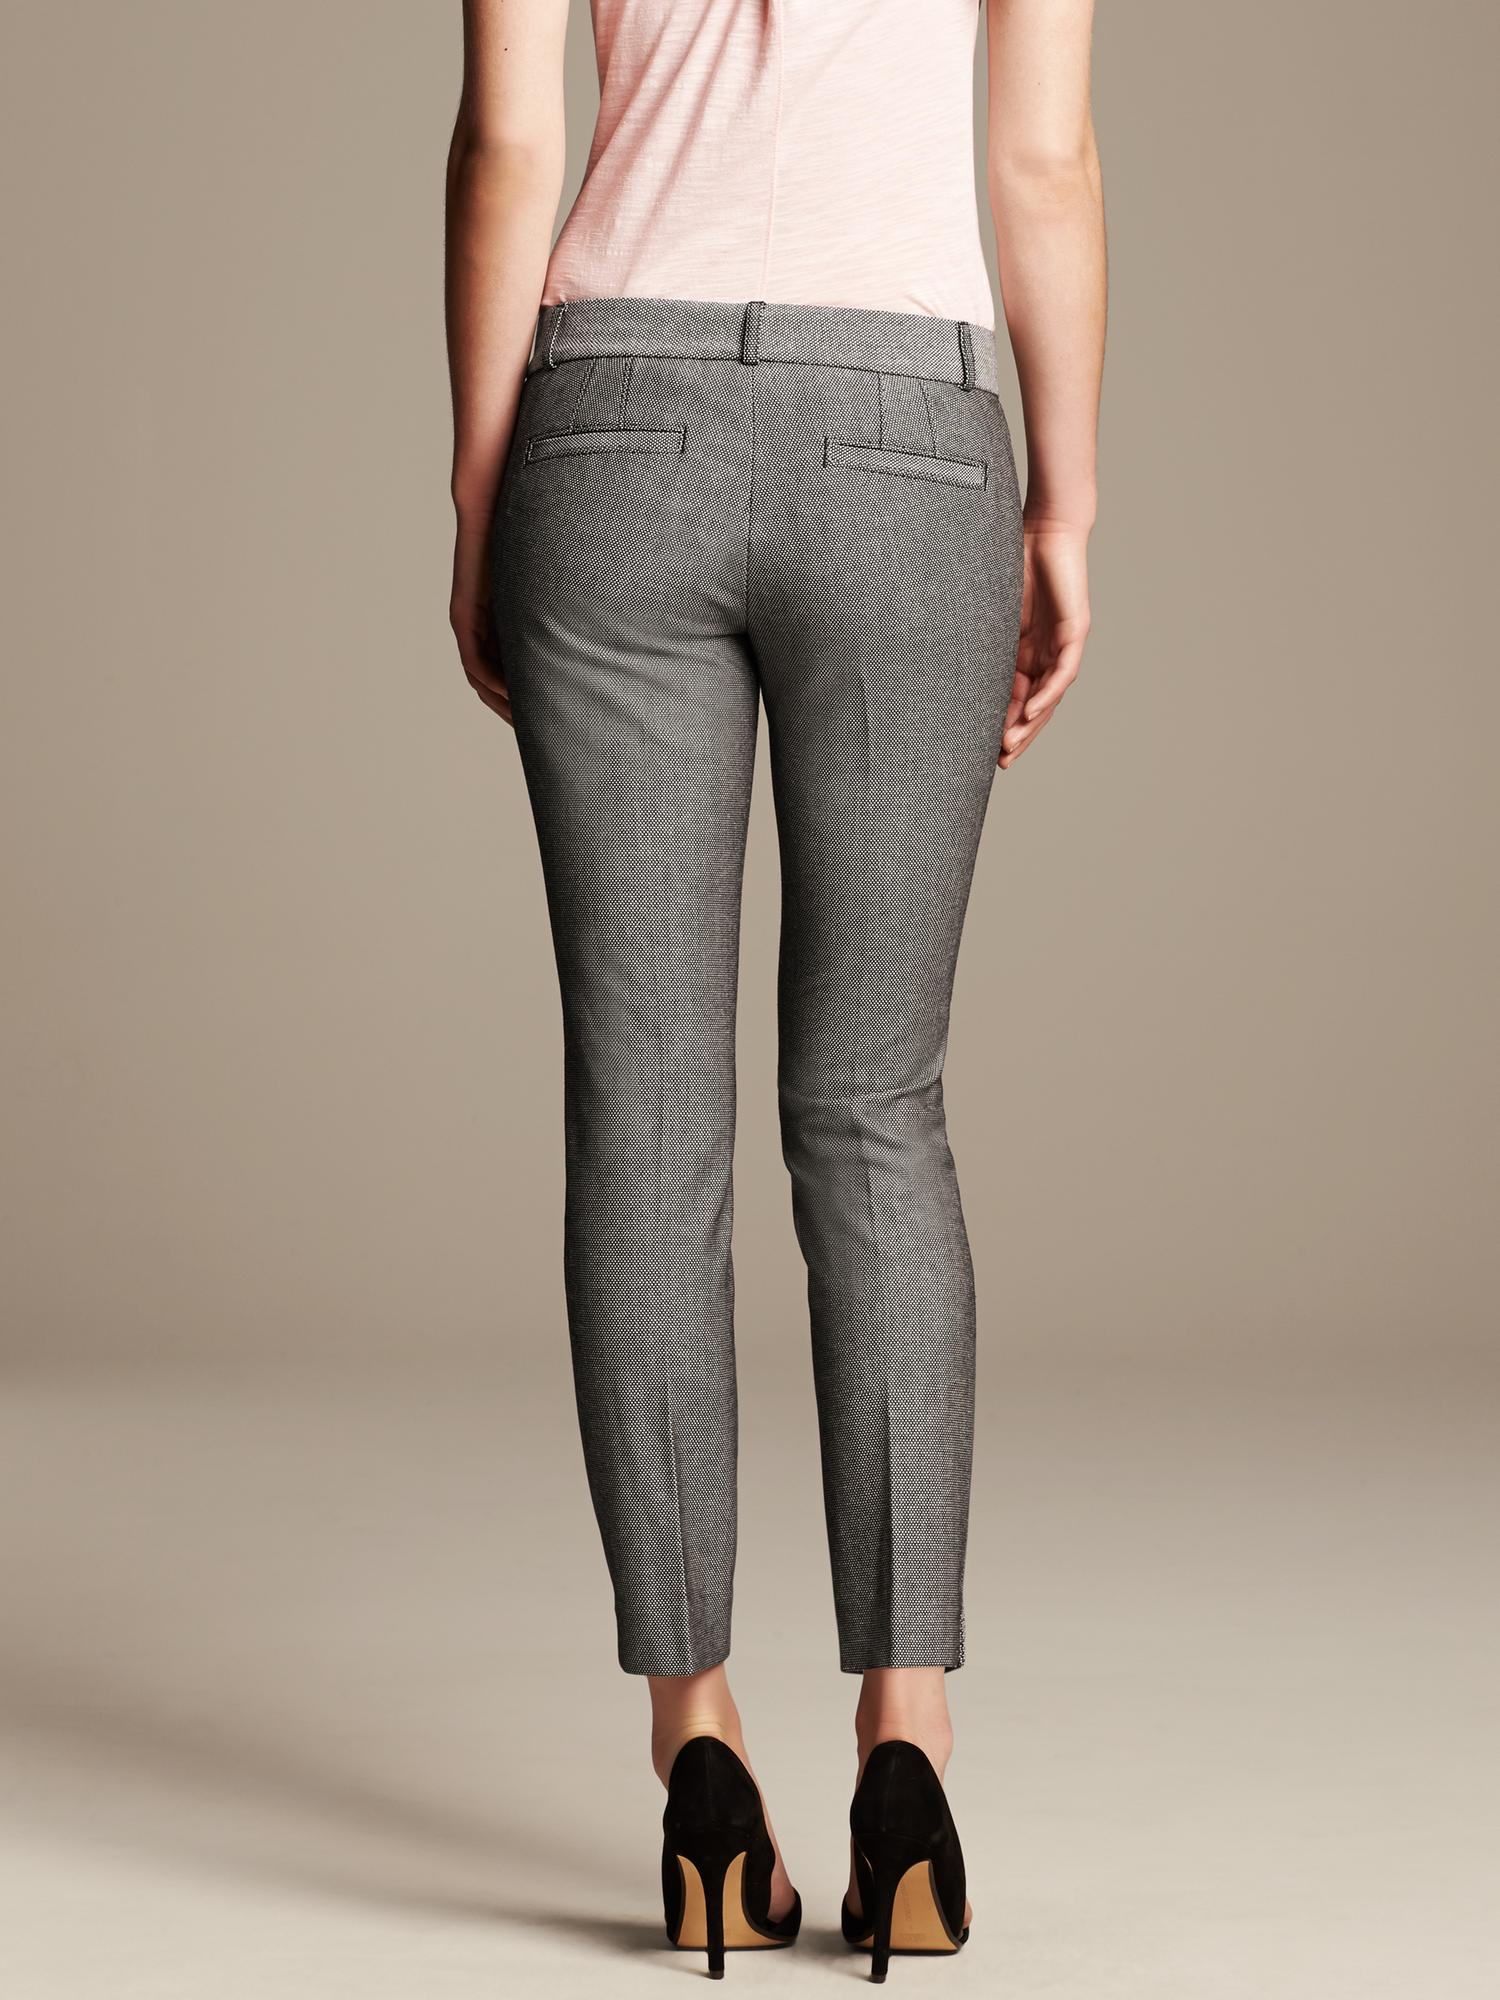 Lyst Banana Republic Sloan Fit Black And White Slim